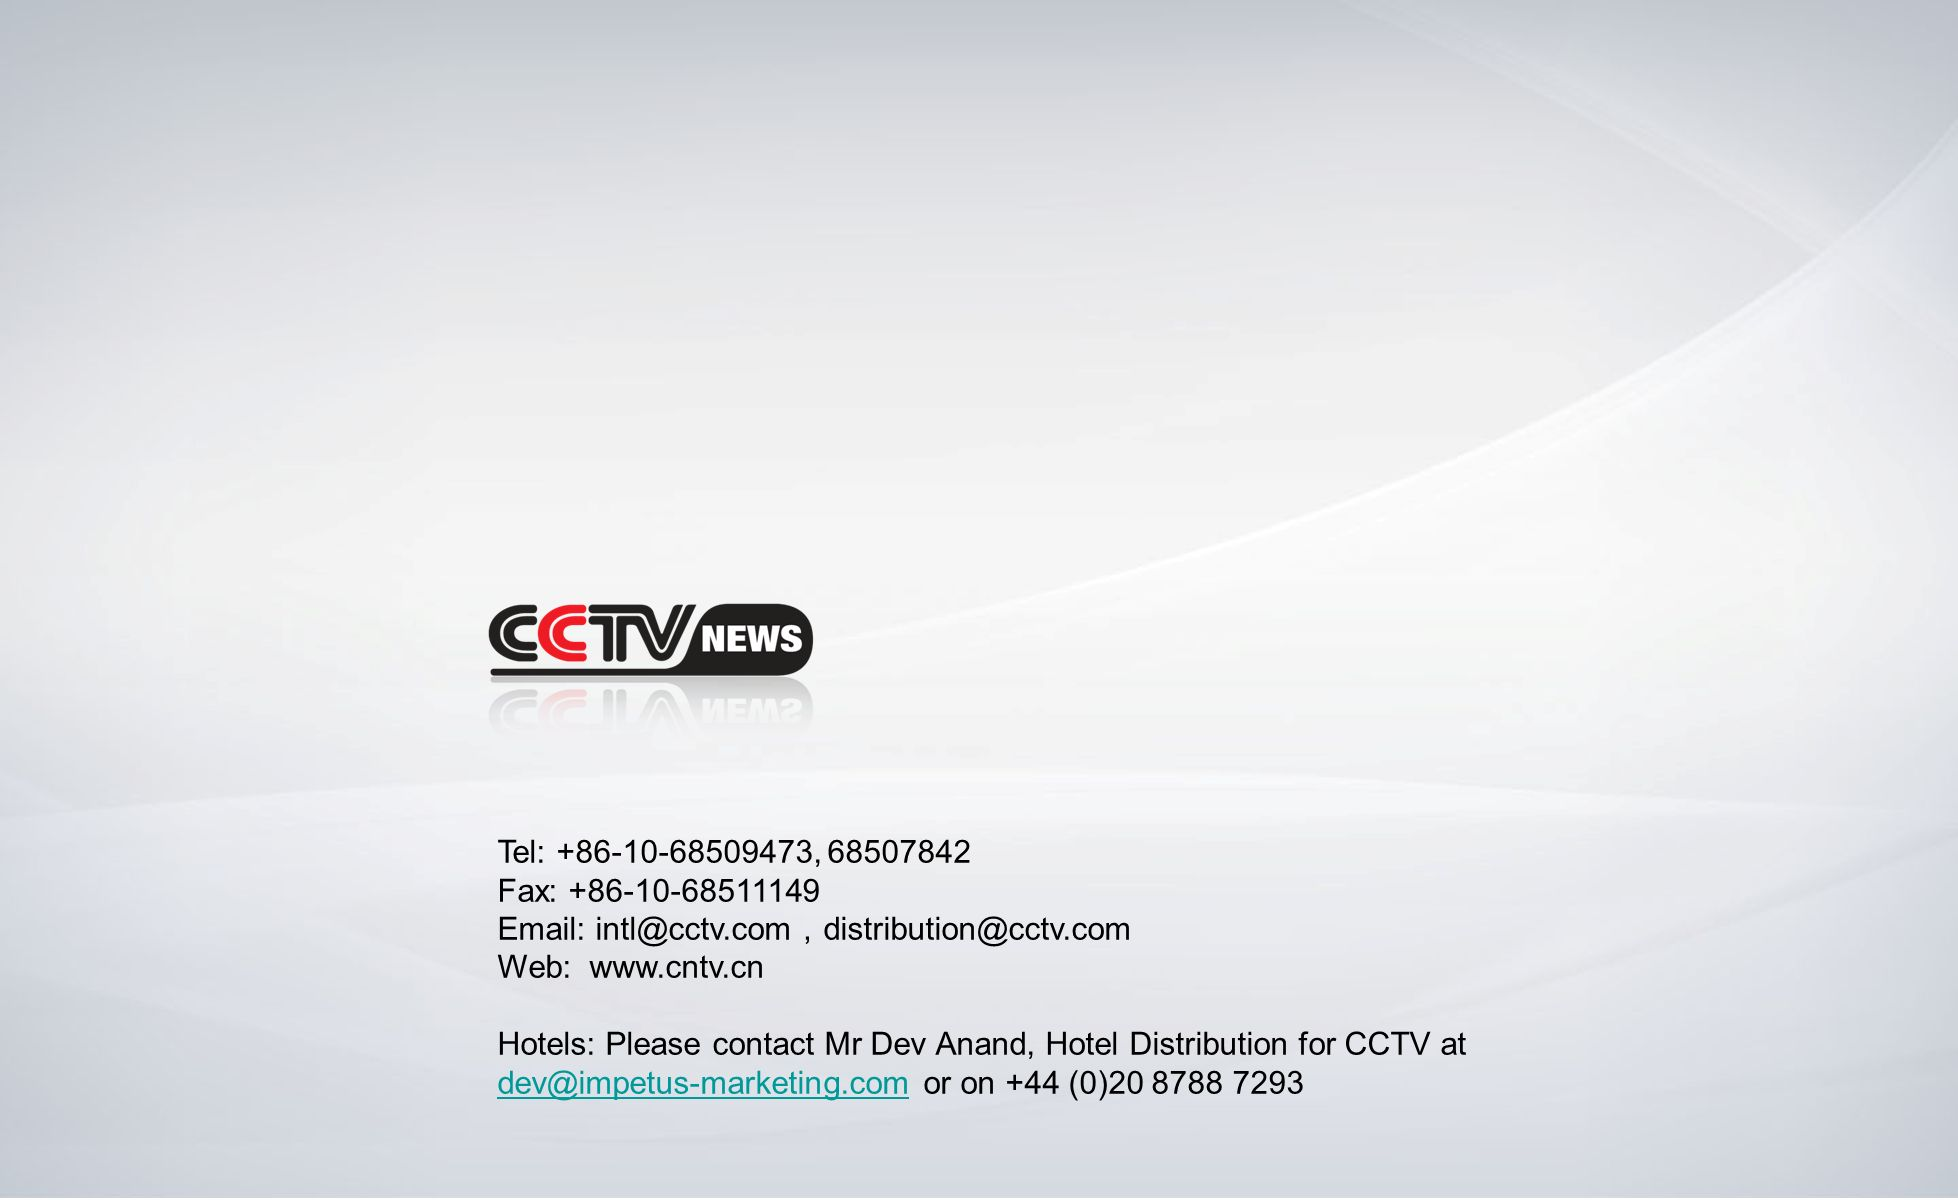 Tel: +86-10-68509473, 68507842 Fax: +86-10-68511149 Email: intl@cctv.com distribution@cctv.com Web: www.cntv.cn Hotels: Please contact Mr Dev Anand, H